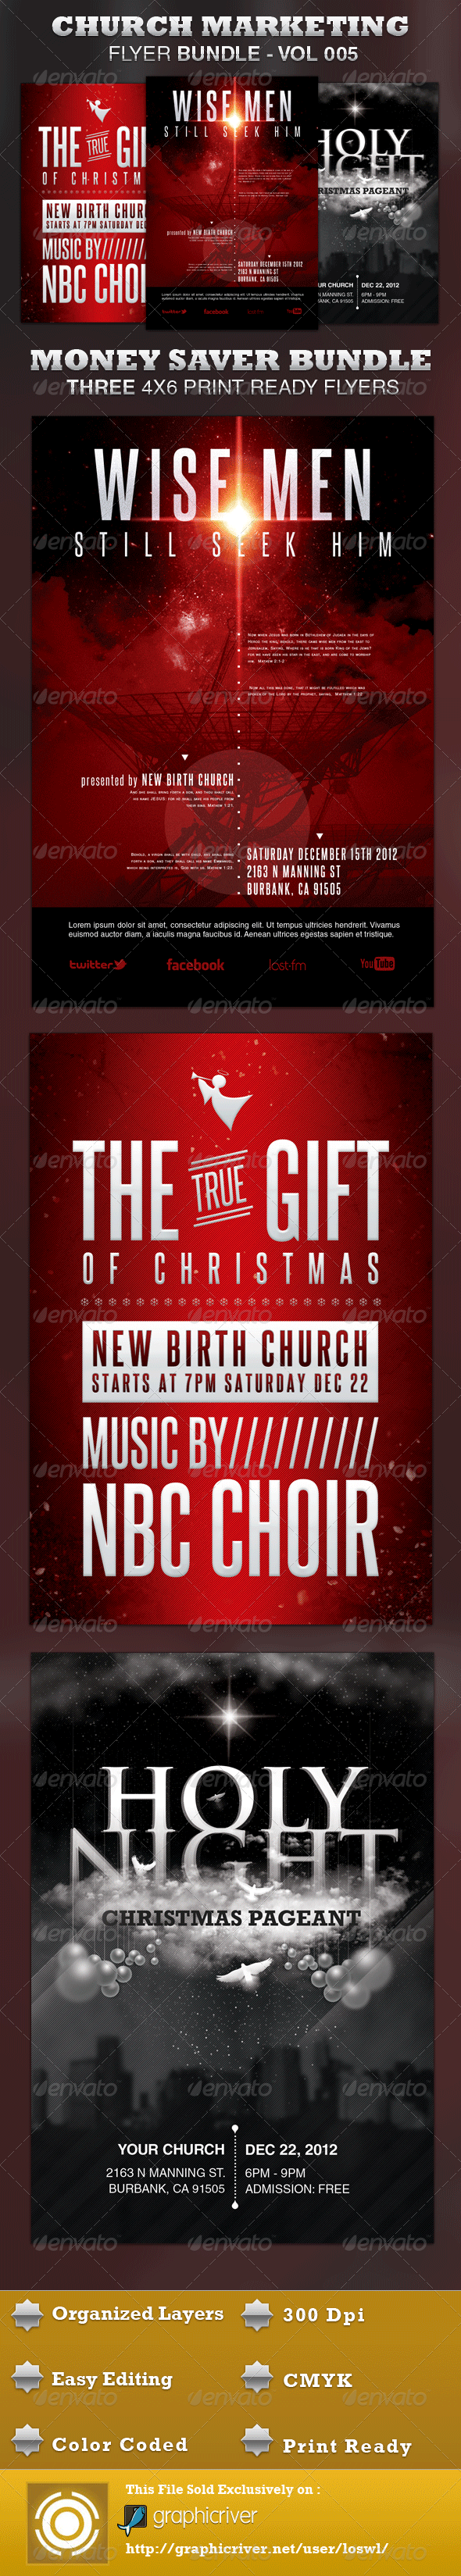 Church Marketing Flyer Bundle Vol-005 - Church Flyers